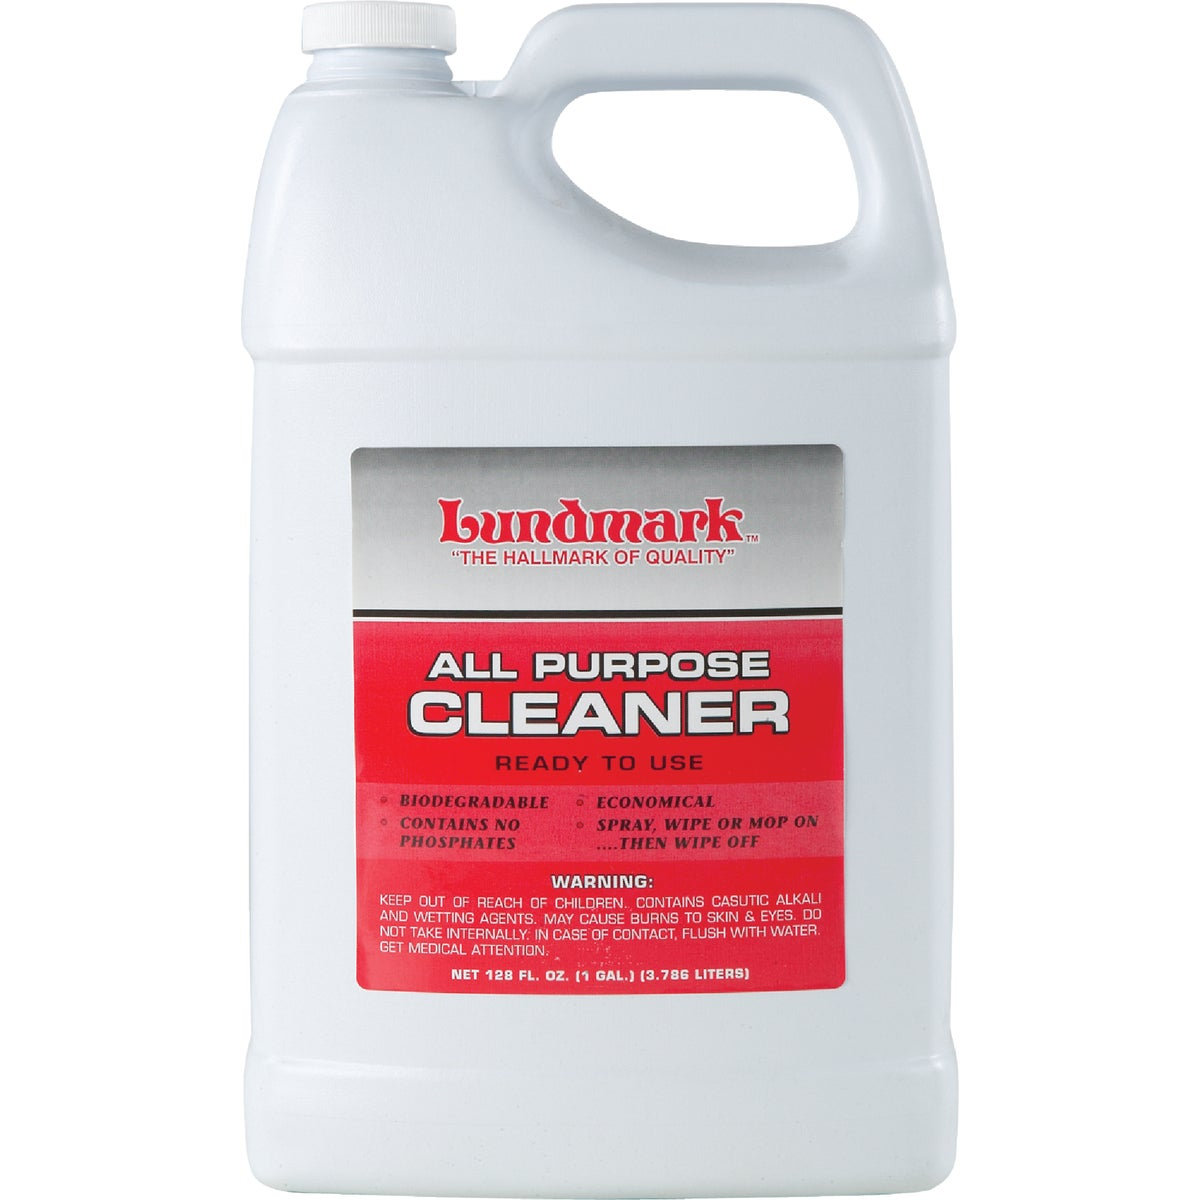 GAL ALL PURPOSE CLEANER - 3450G01-4 by Lundmark Wax Co